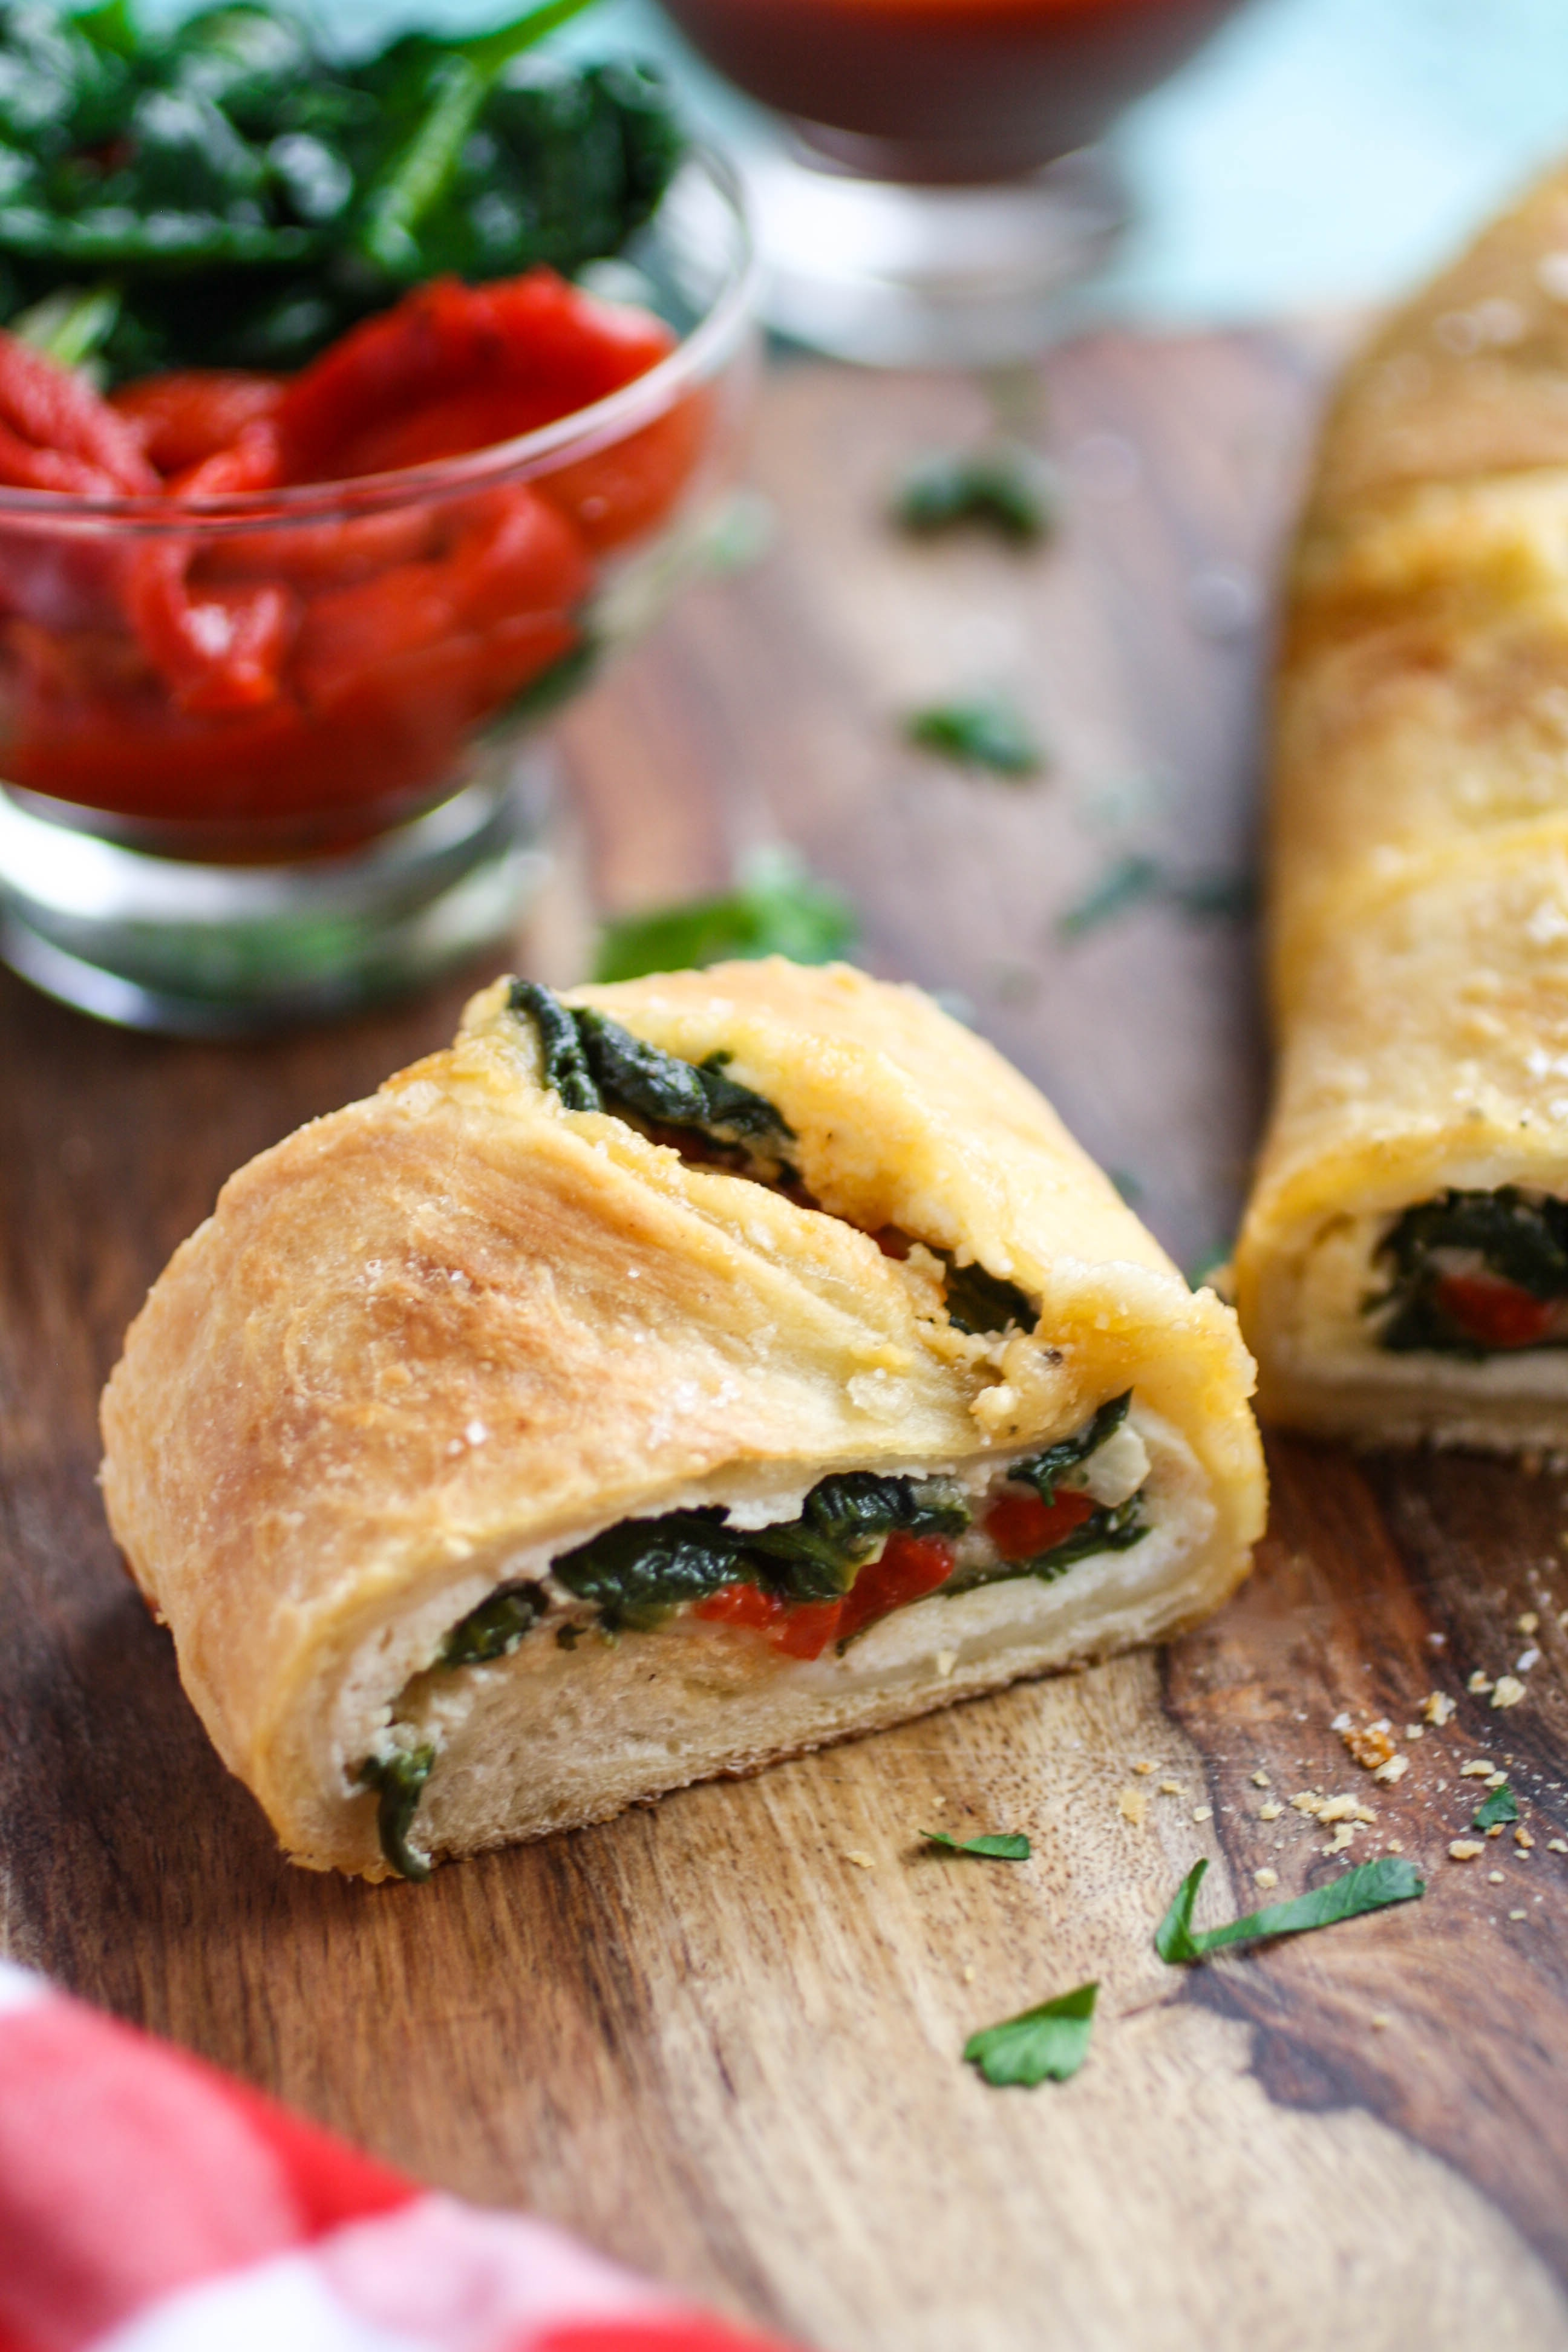 Spinach and Roasted Red Pepper Stromboli is a wonderful dish to serve any night of the week. Stromboli is like pizza, but rolled up and baked!